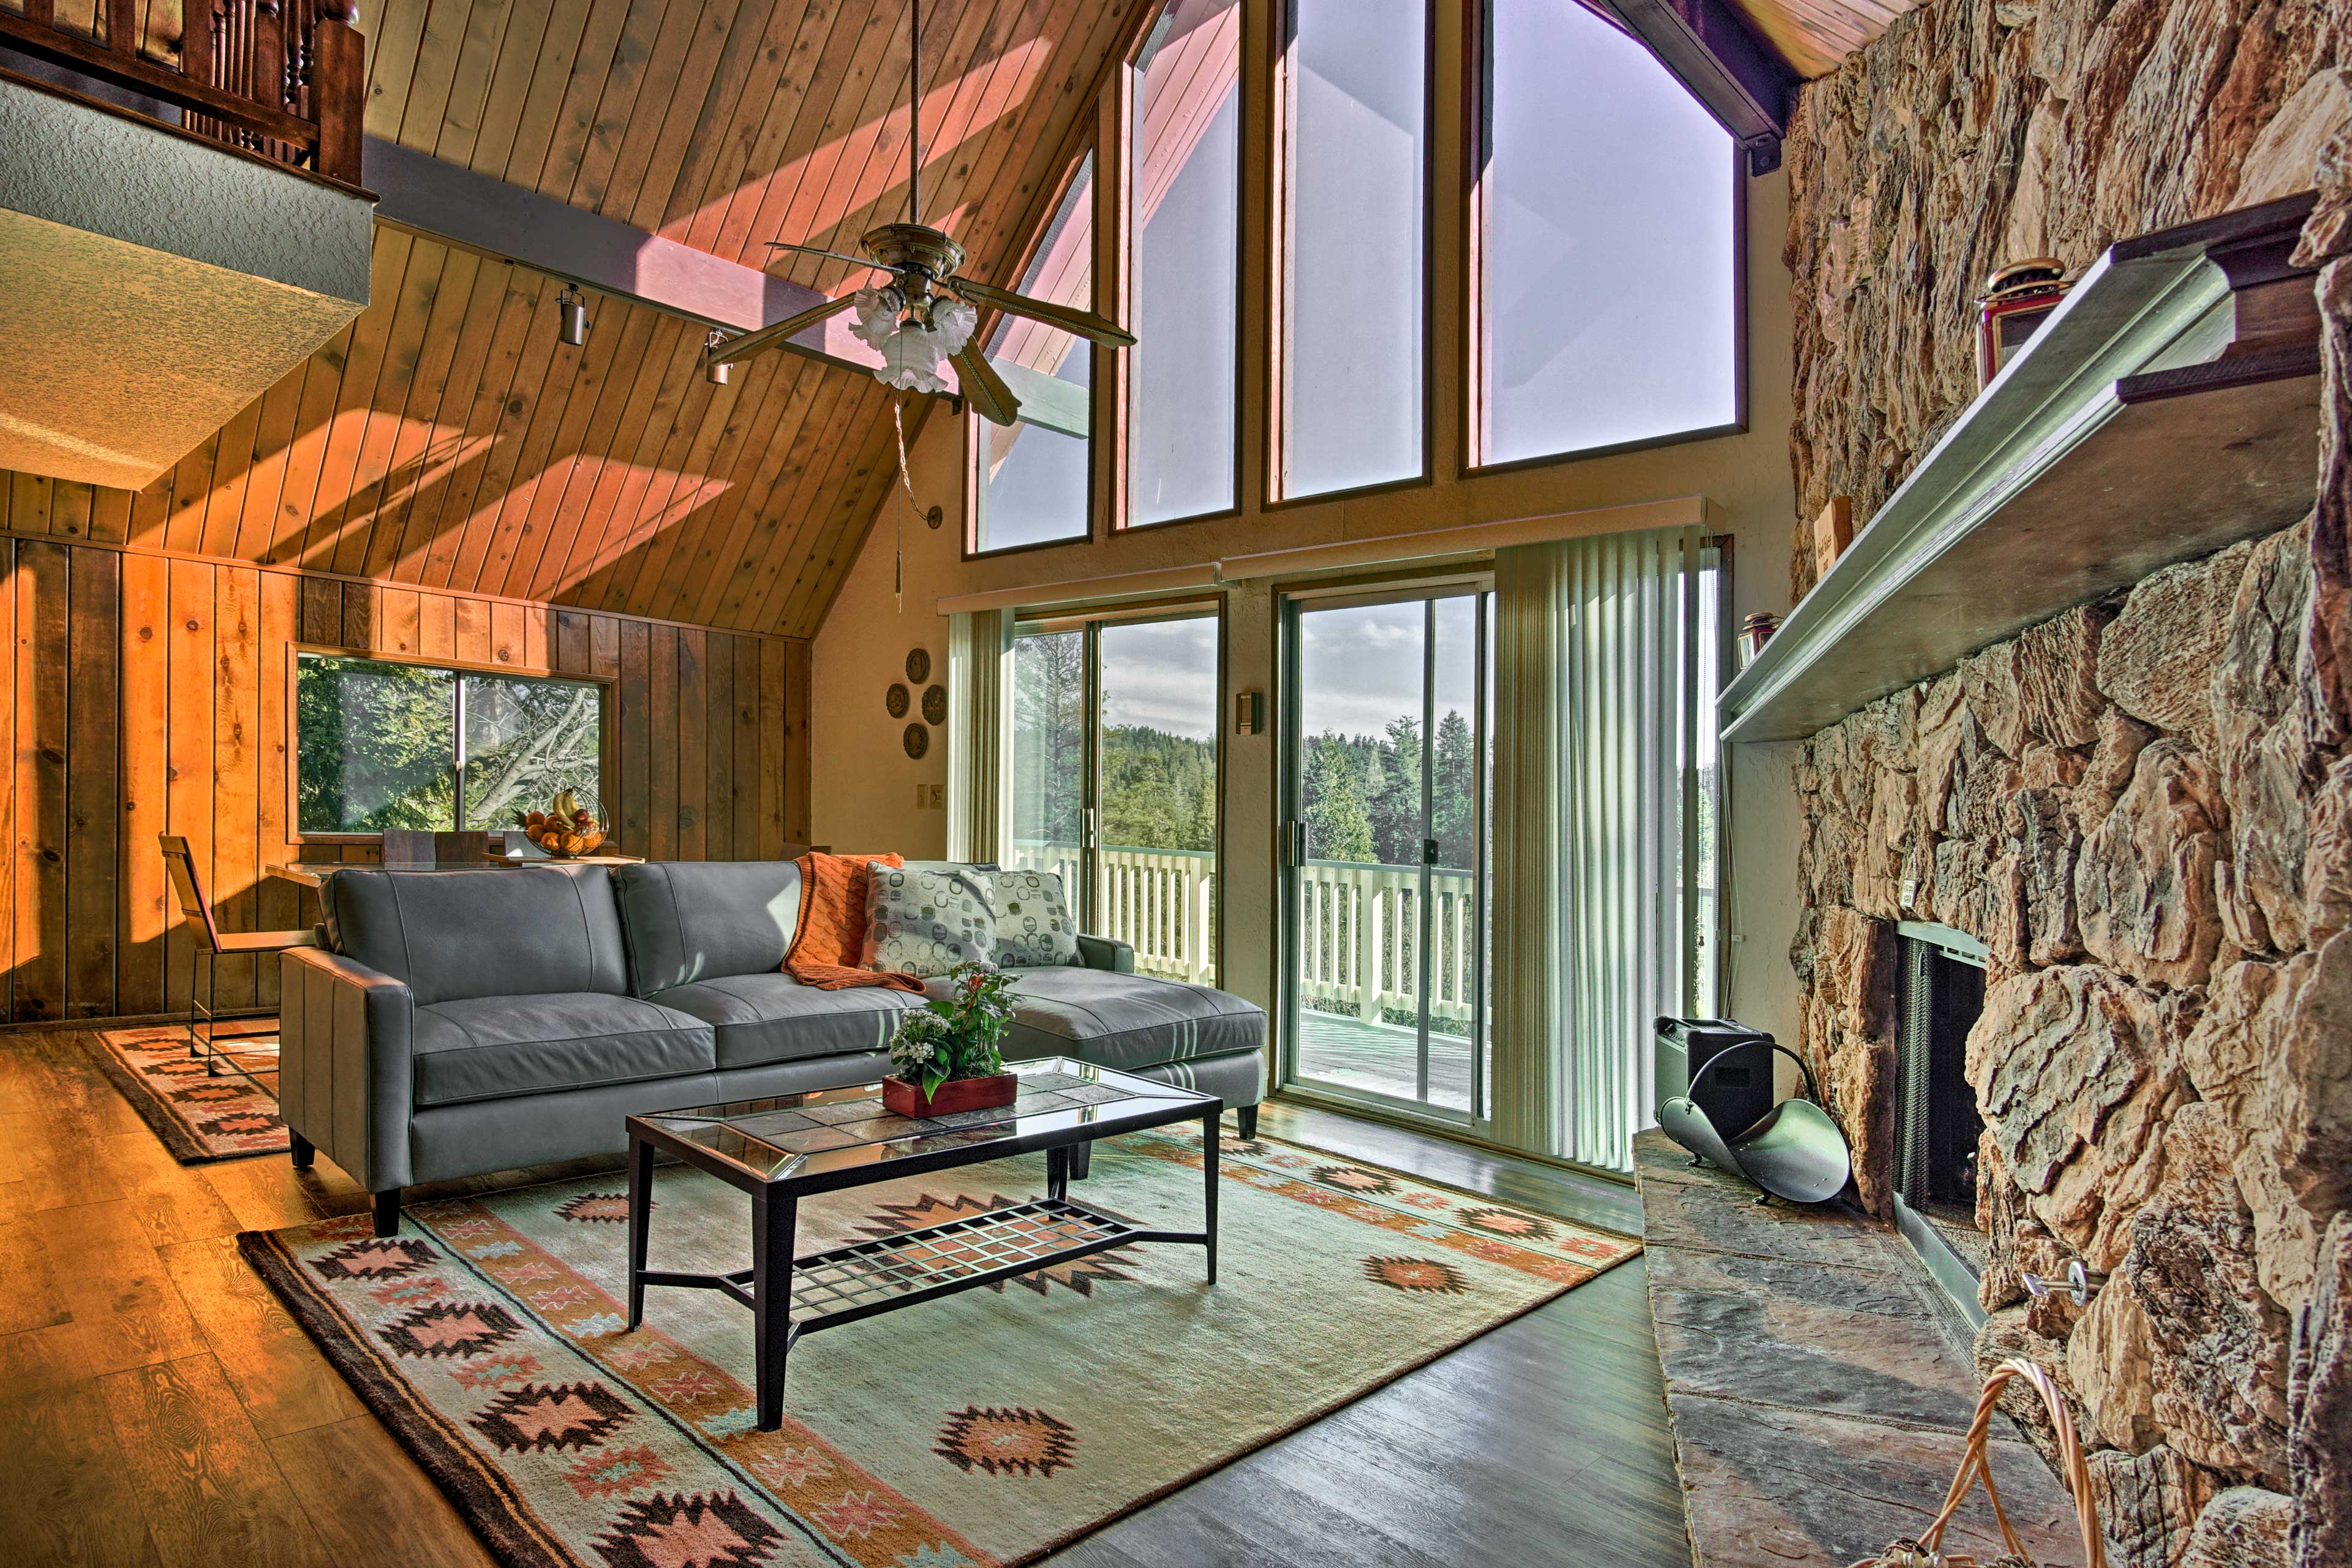 Spread out and relax at this 3-story vacation rental cabin in Lake Arrowhead.